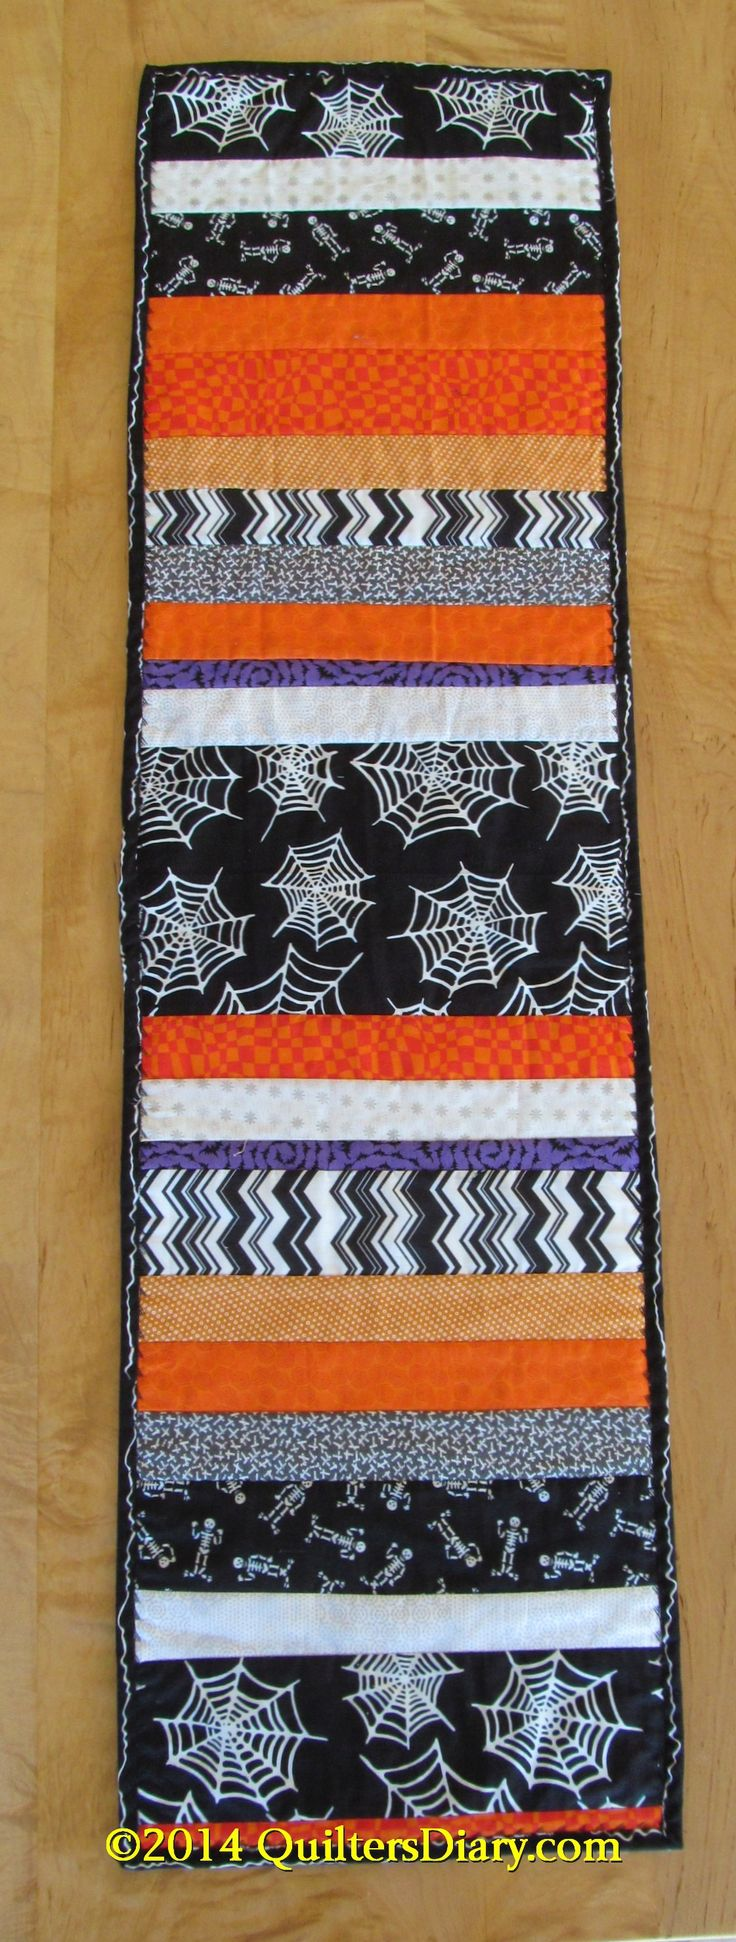 Halloween-Quilt-as-you-Go-Table-Runner.jpg